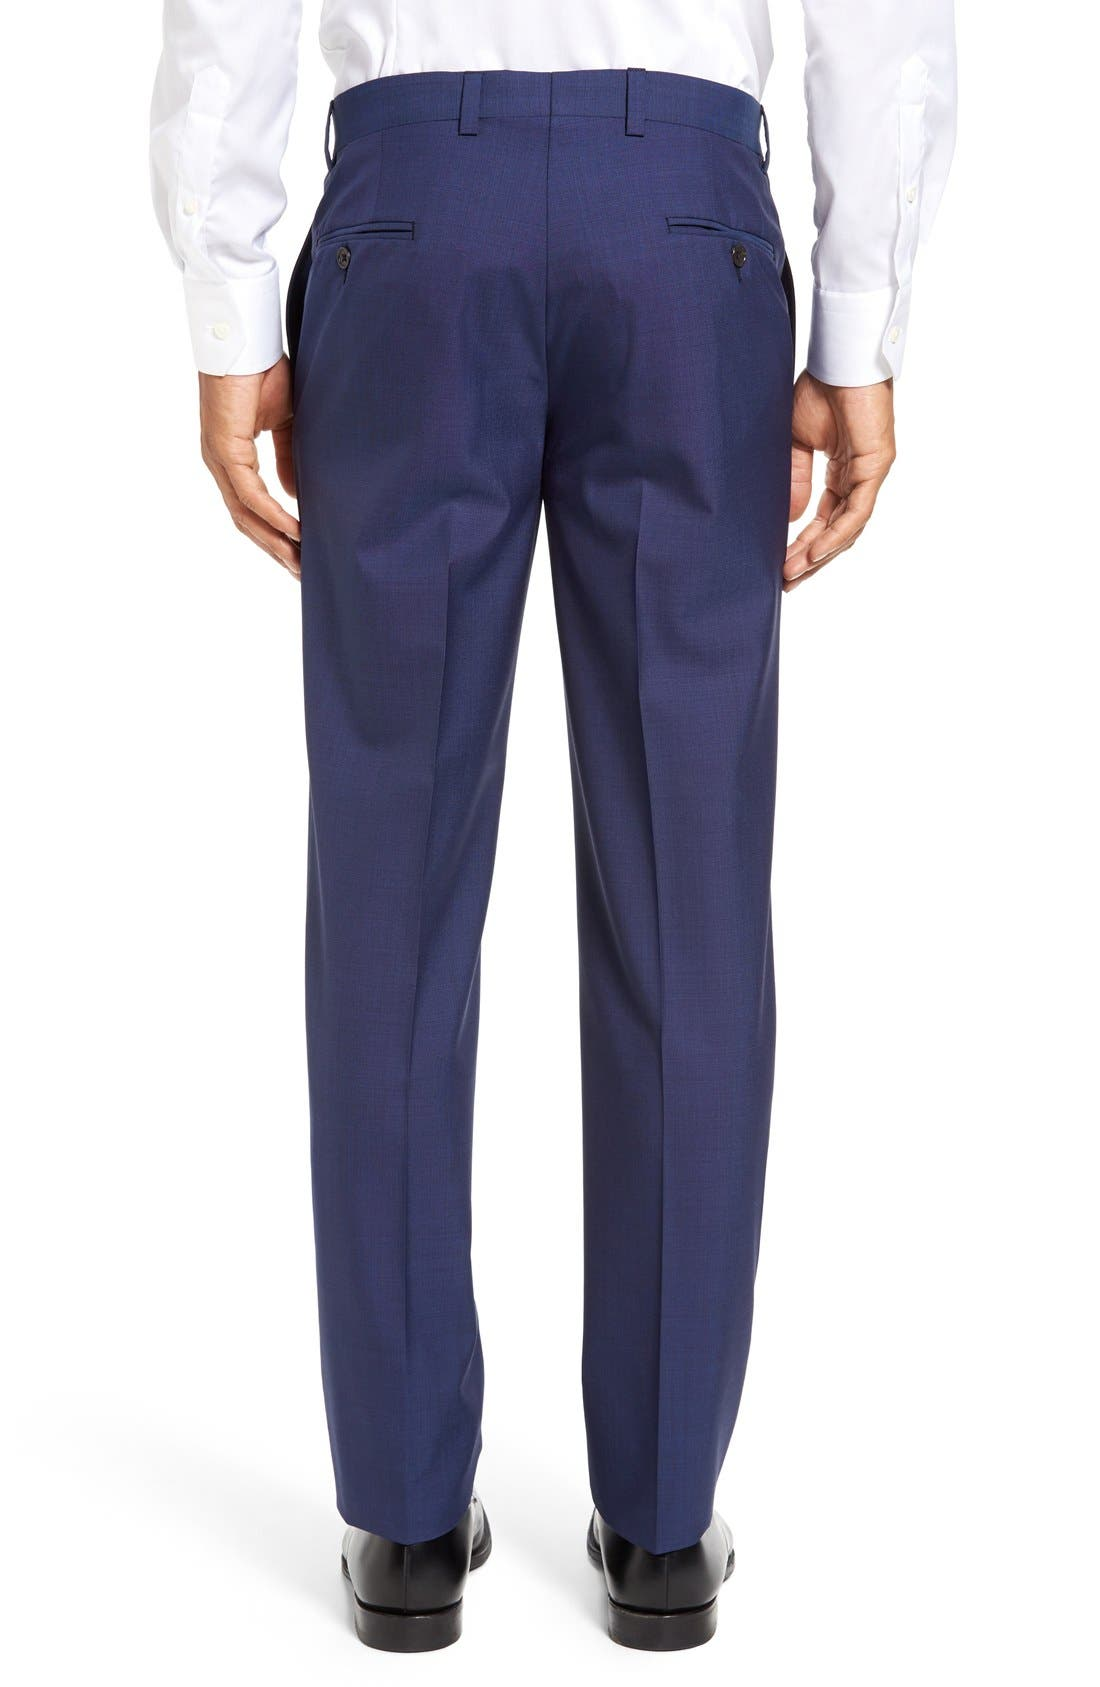 Jefferson Flat Front Solid Wool Trousers,                             Alternate thumbnail 8, color,                             BLUE